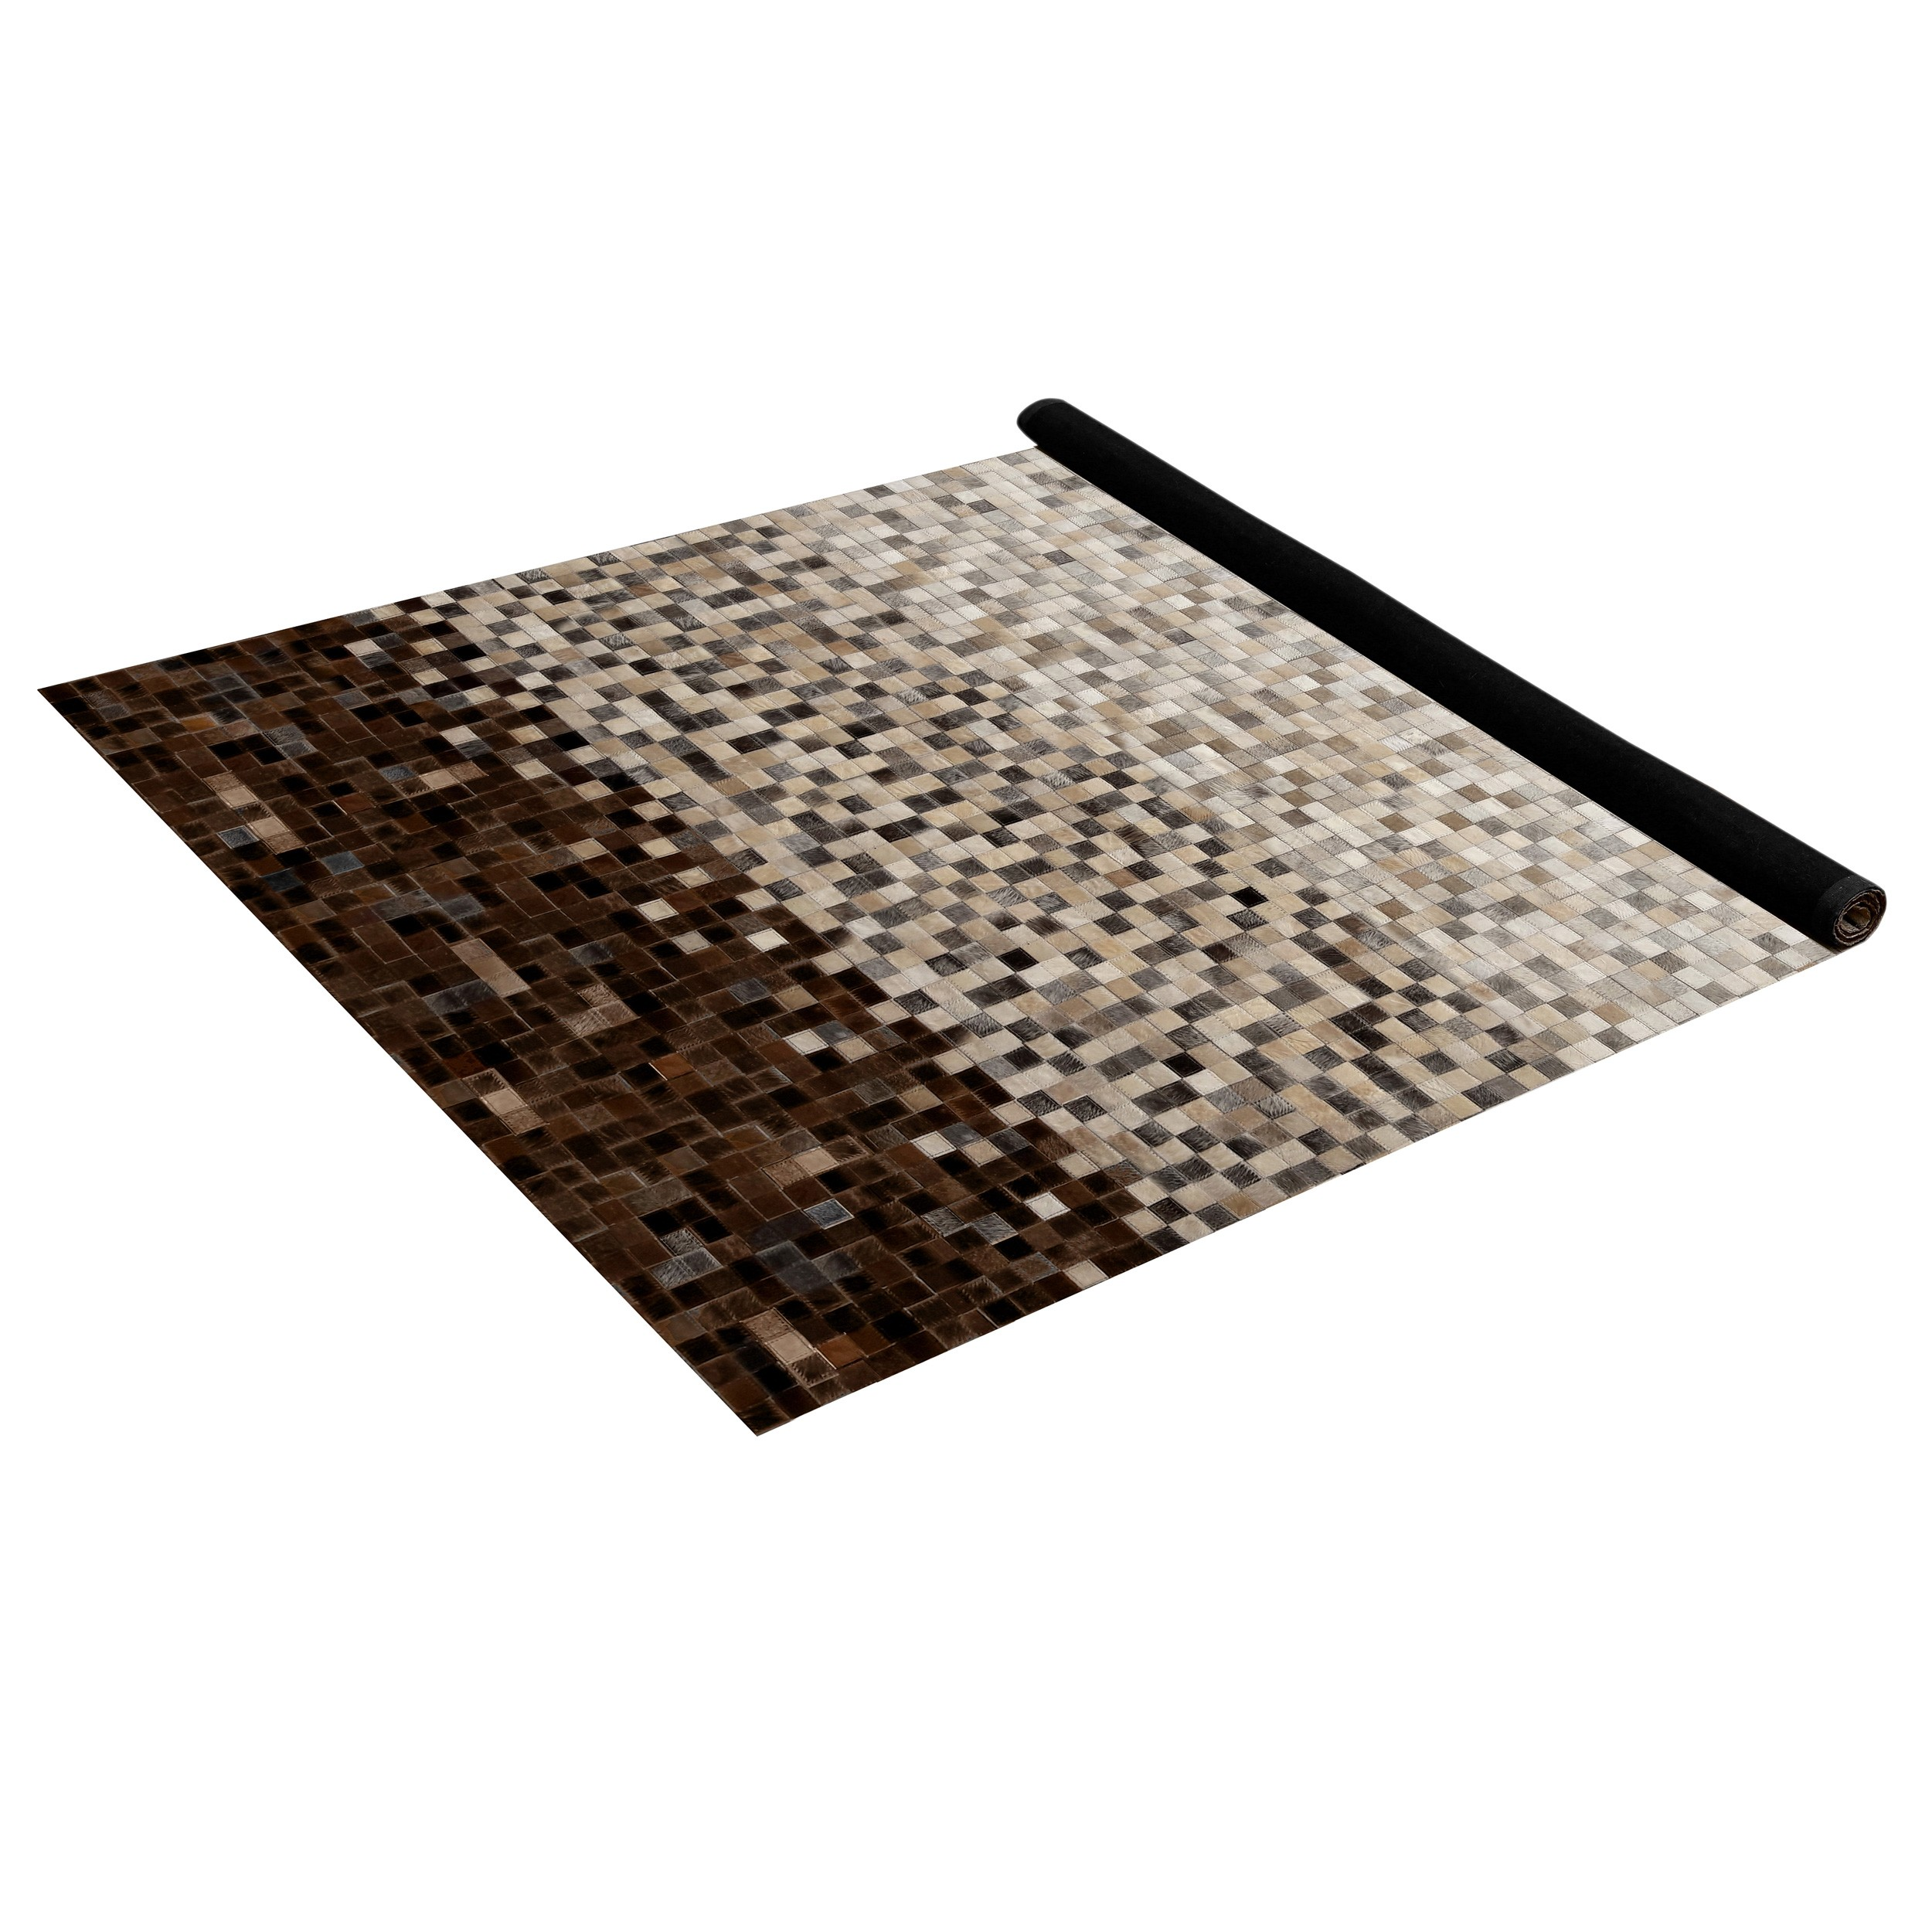 Tapis Cuir Pas Cher Tapis Marron Beige Simple Tapis Beige Et Marron With